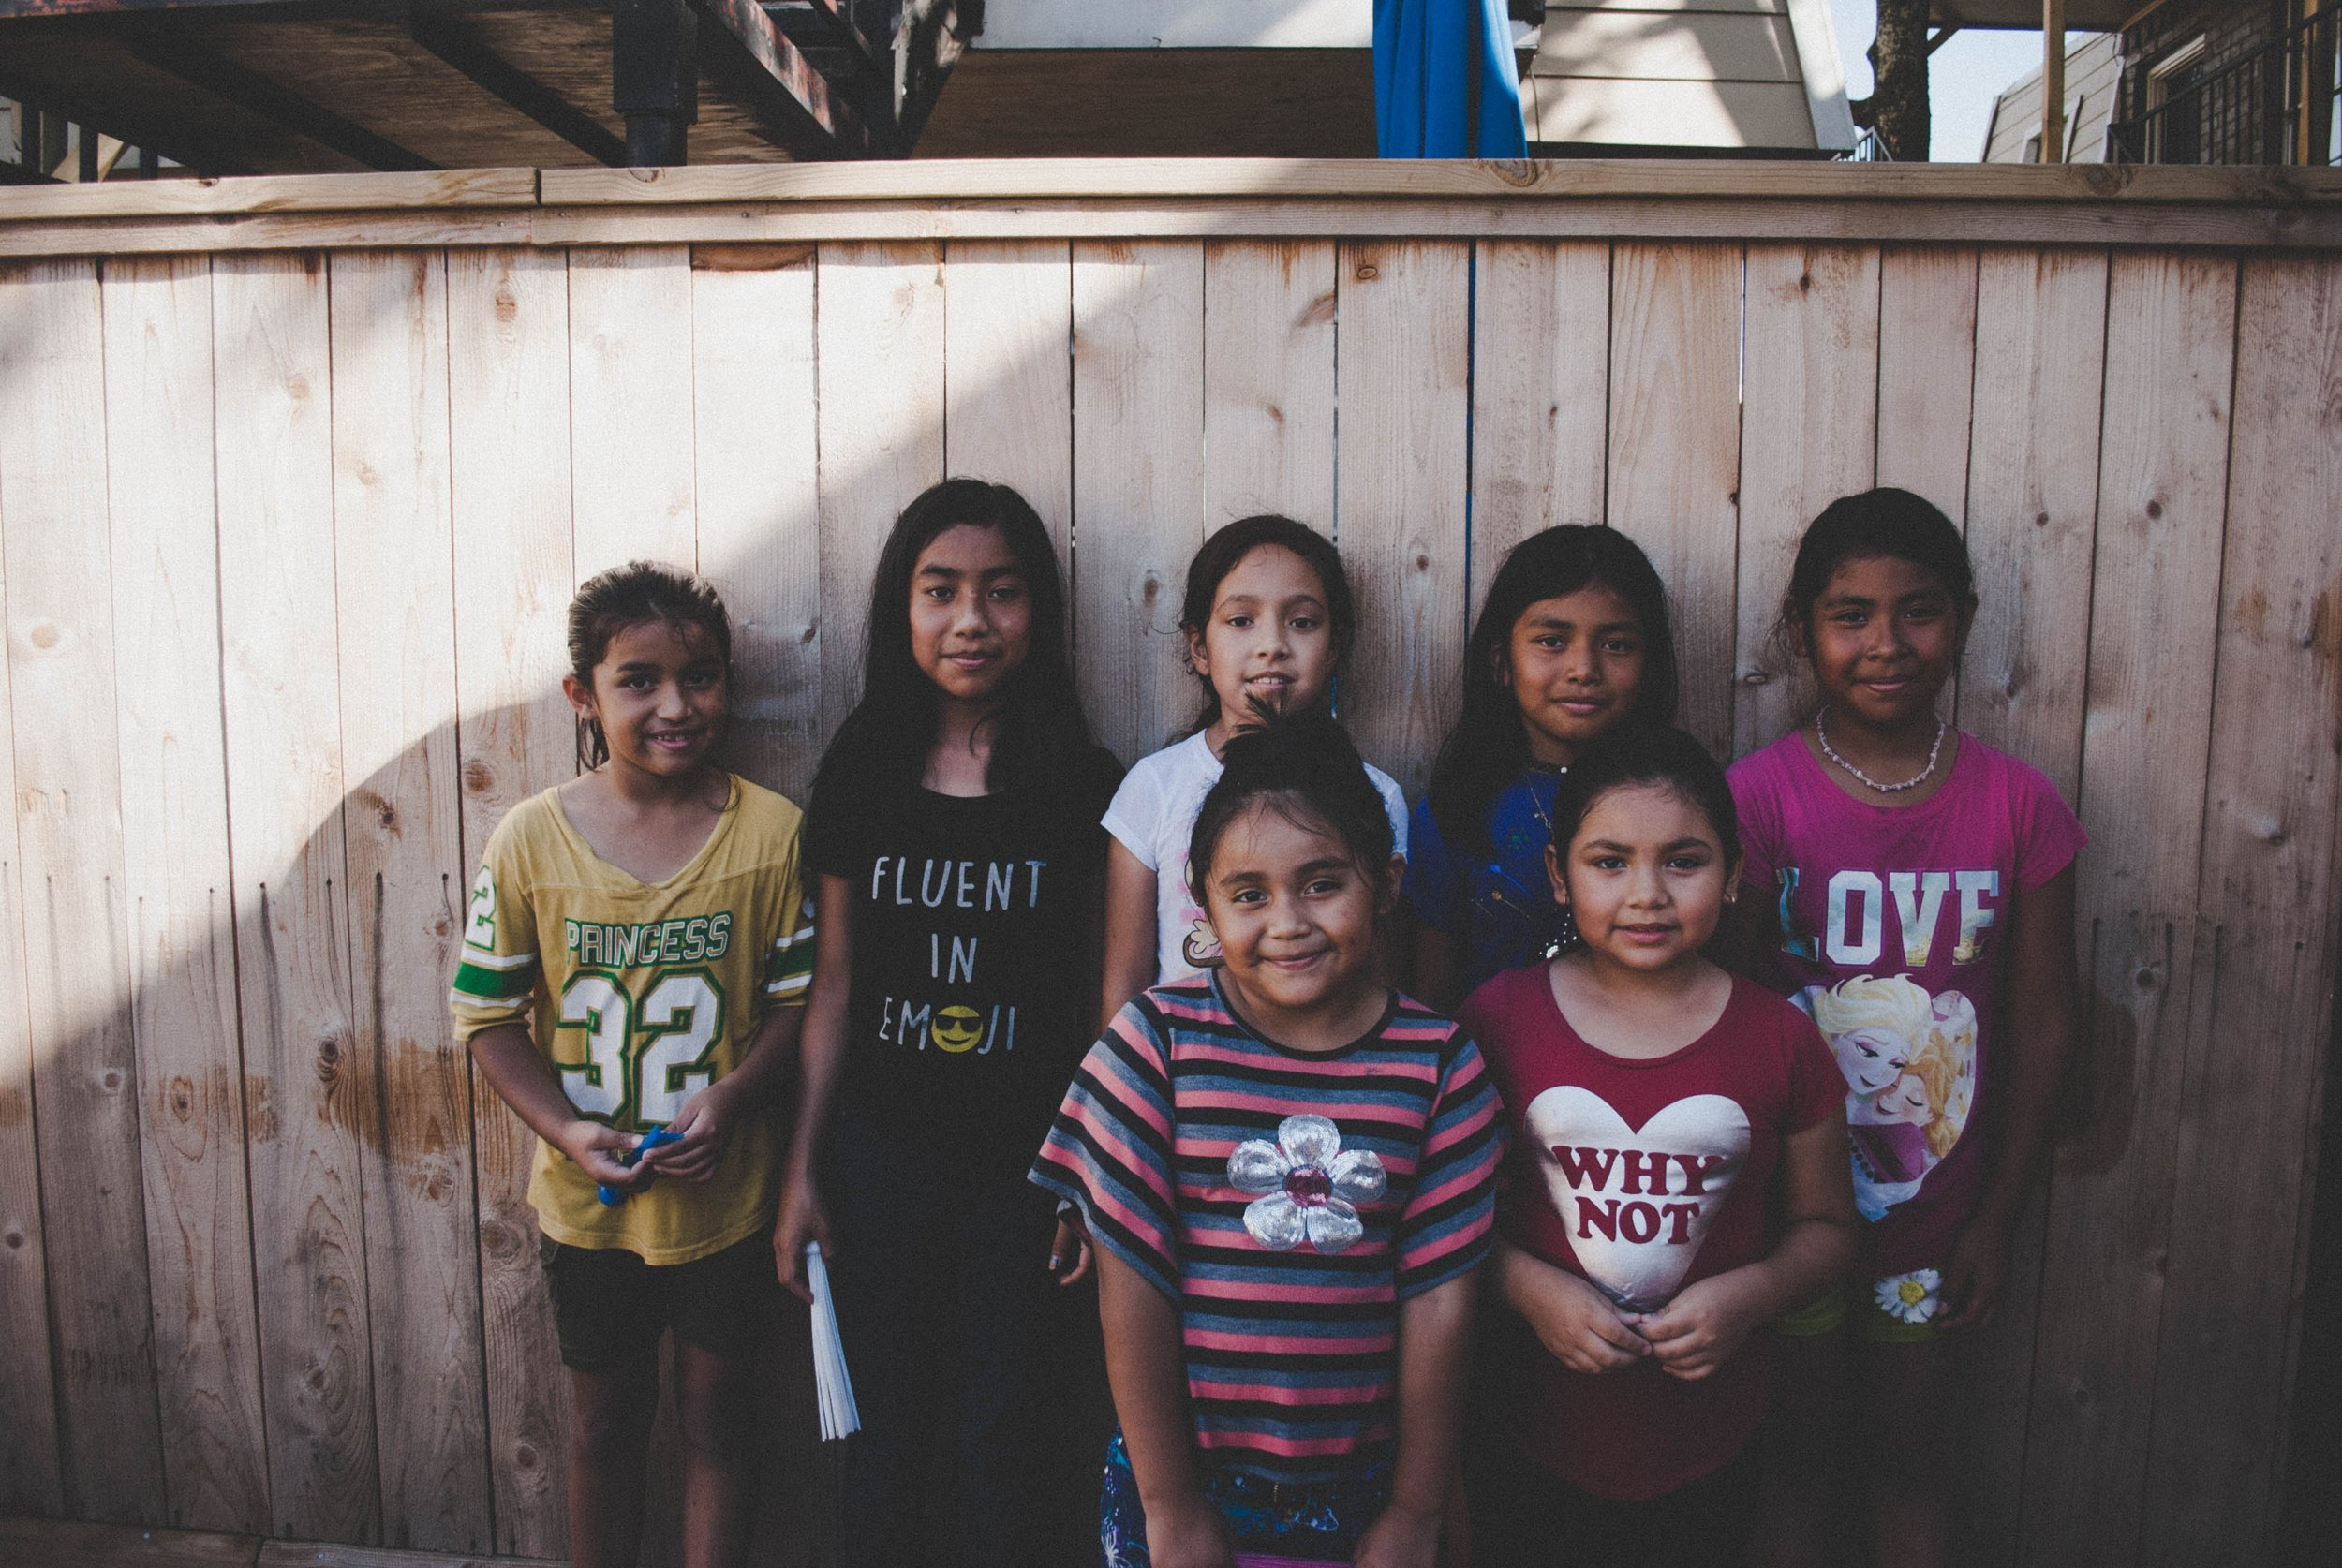 Next Light + Revival Sports - These two partner ministries work with kids from immigrant or refugees families in at risk environments. Join the team if you have a heart for kids, like to plan activities, play games or coach soccer. Come check it out any Tuesday night!Contact: Sarah Watt at sarah@ashfordcc.com